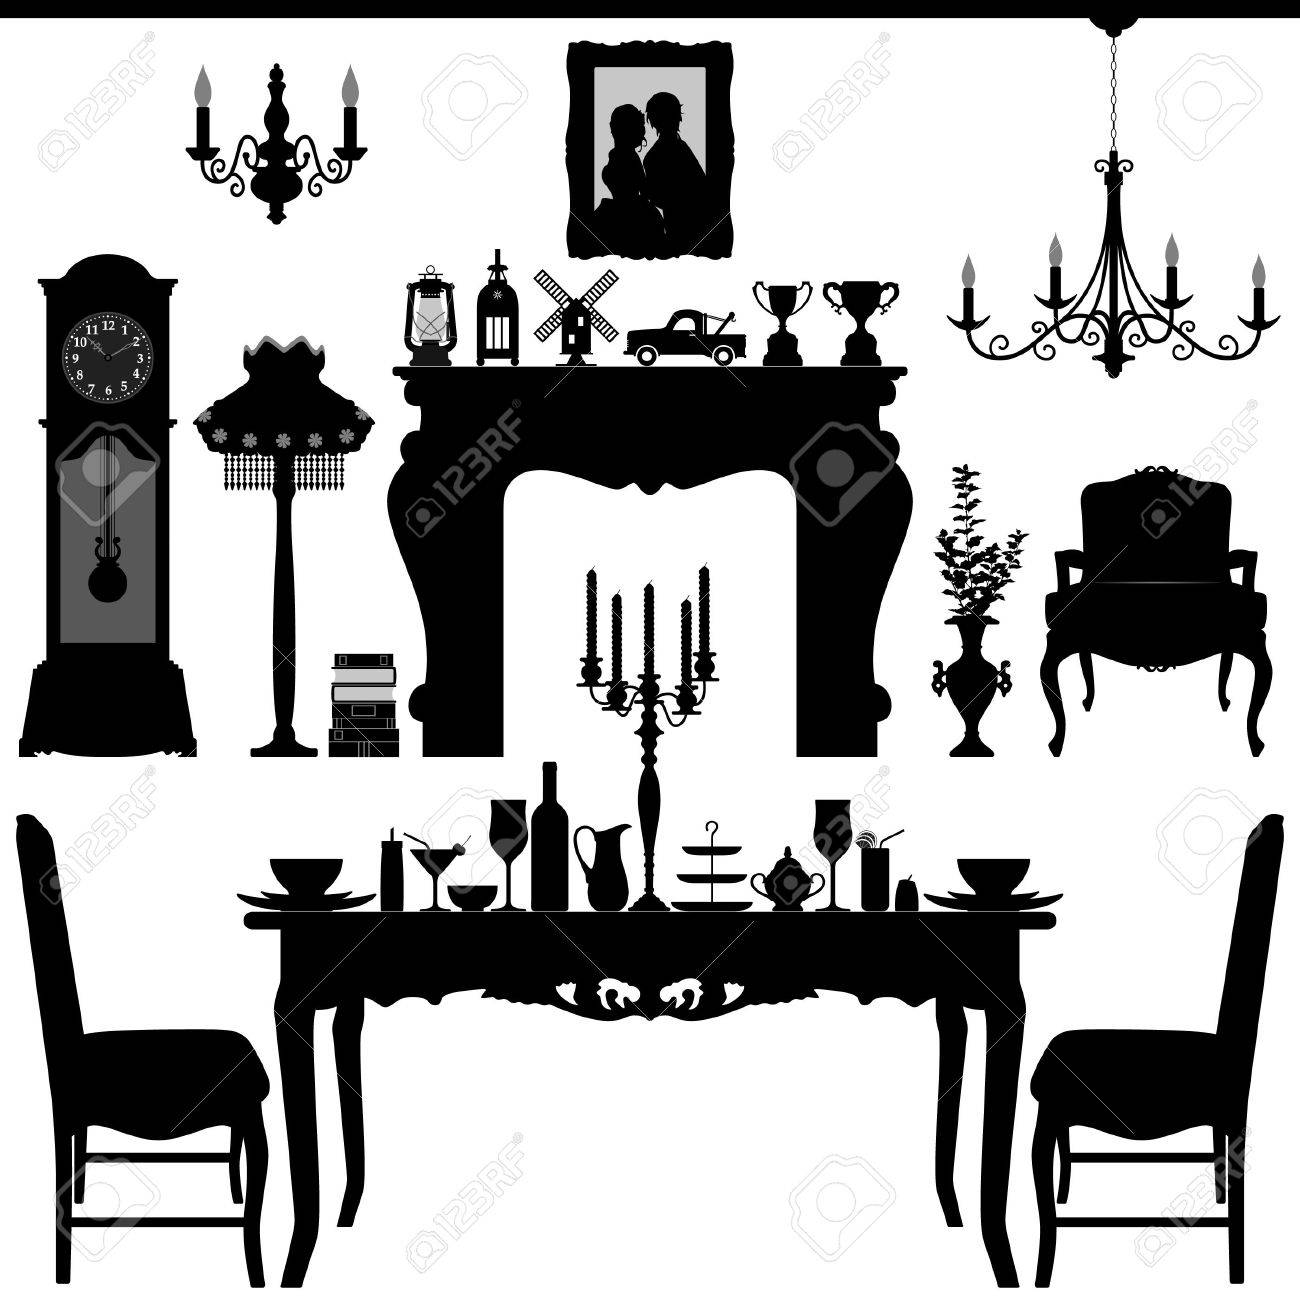 Antique chair silhouette - Dining Area Traditional Old Antique Furniture Interior Design Stock Vector 18811999